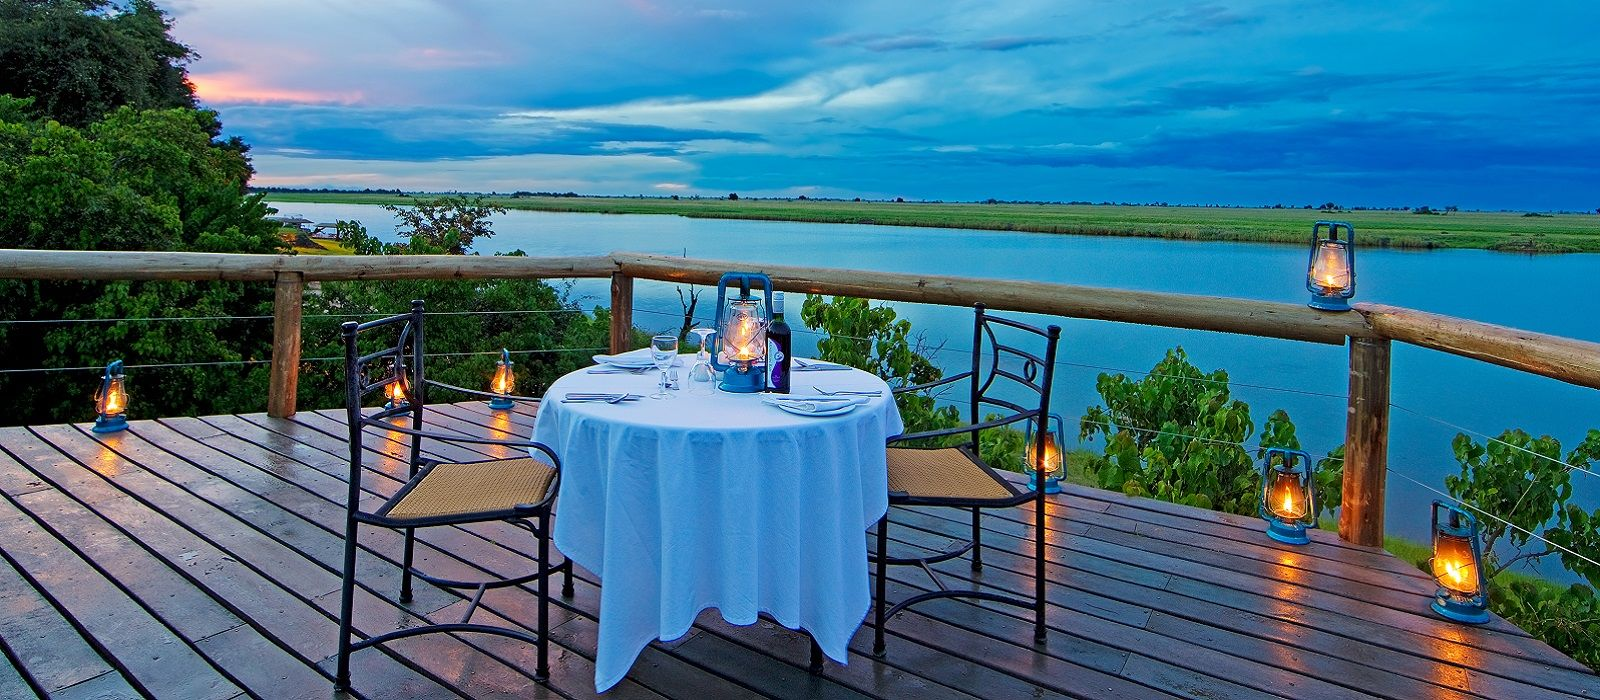 Discover the Best Luxury Safari Camps in Botswana!